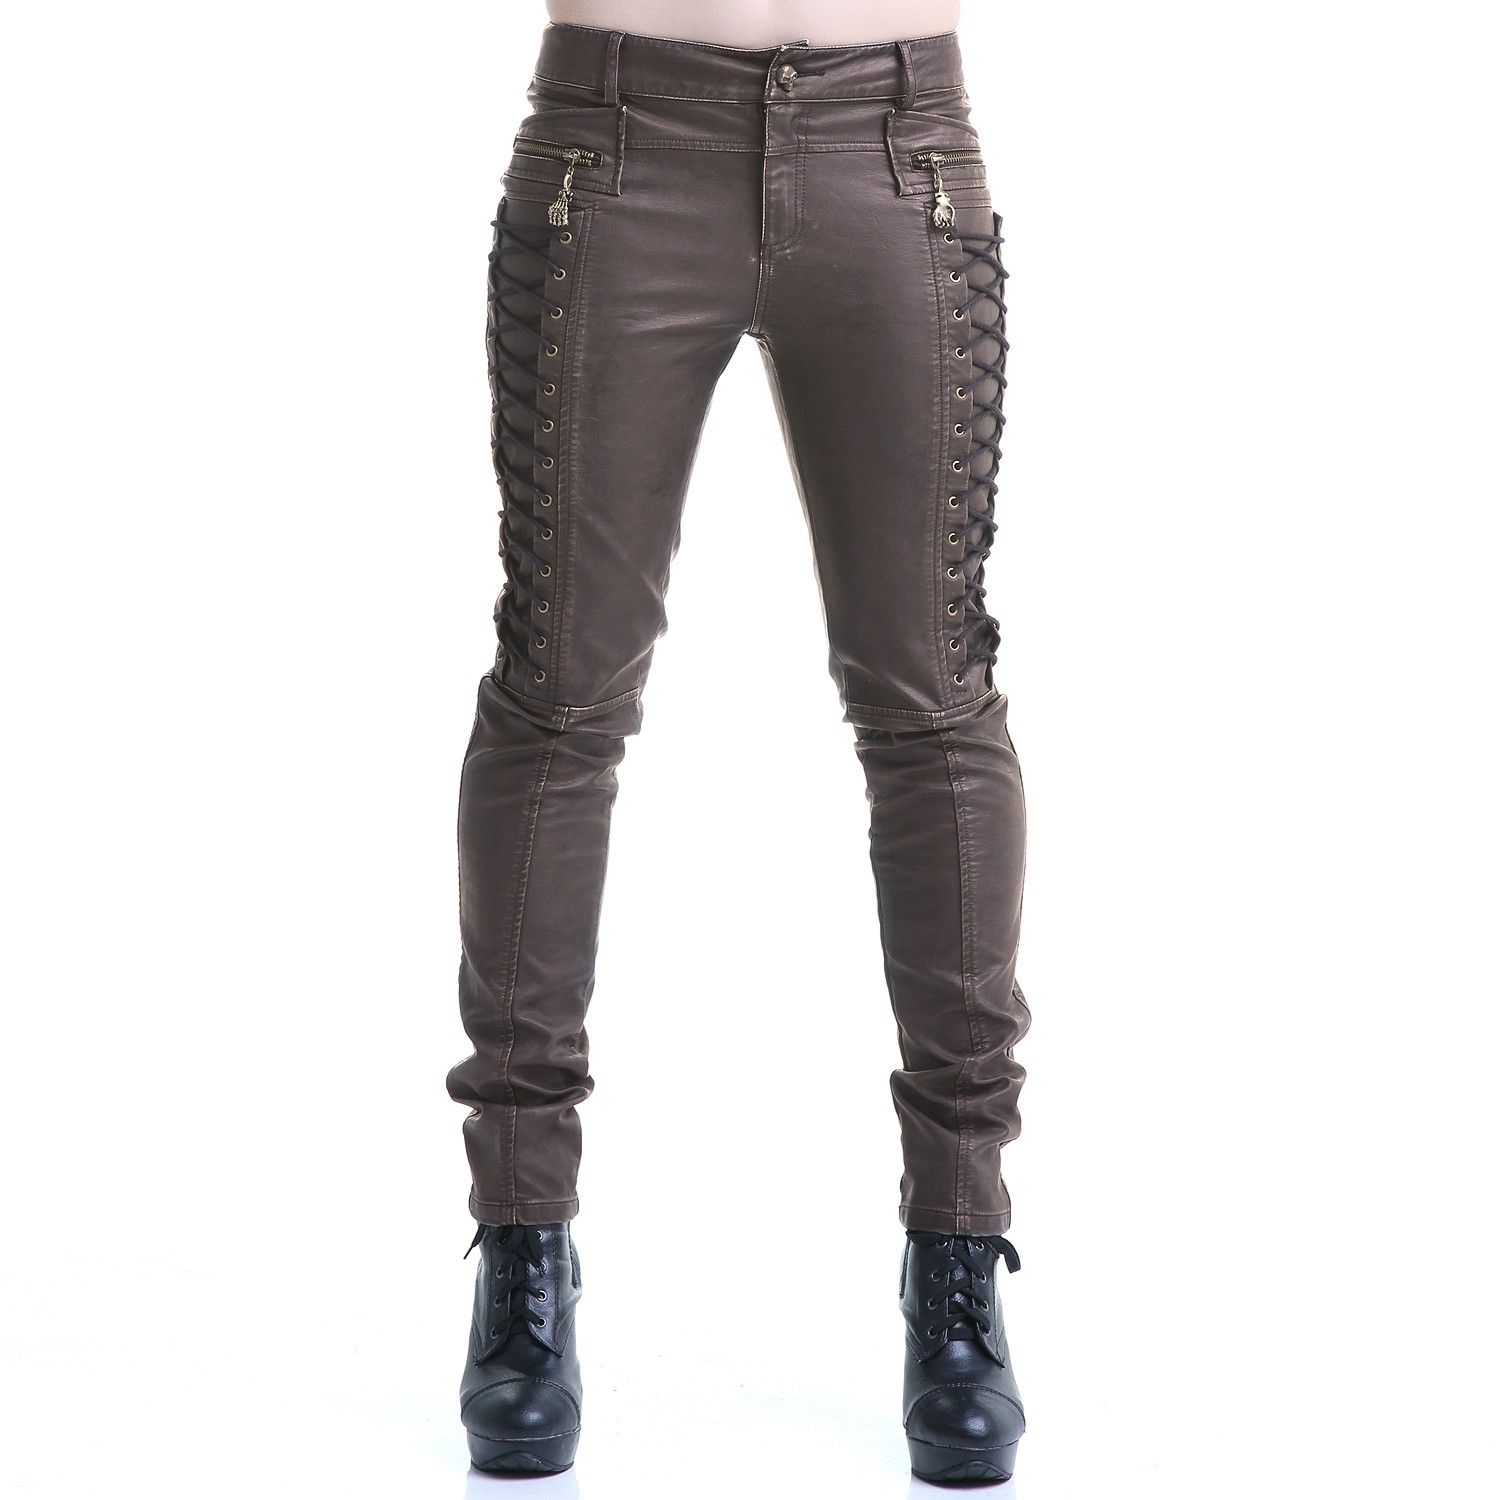 Brown Steampunk Pants Made of Leather   Crazyinlove ...